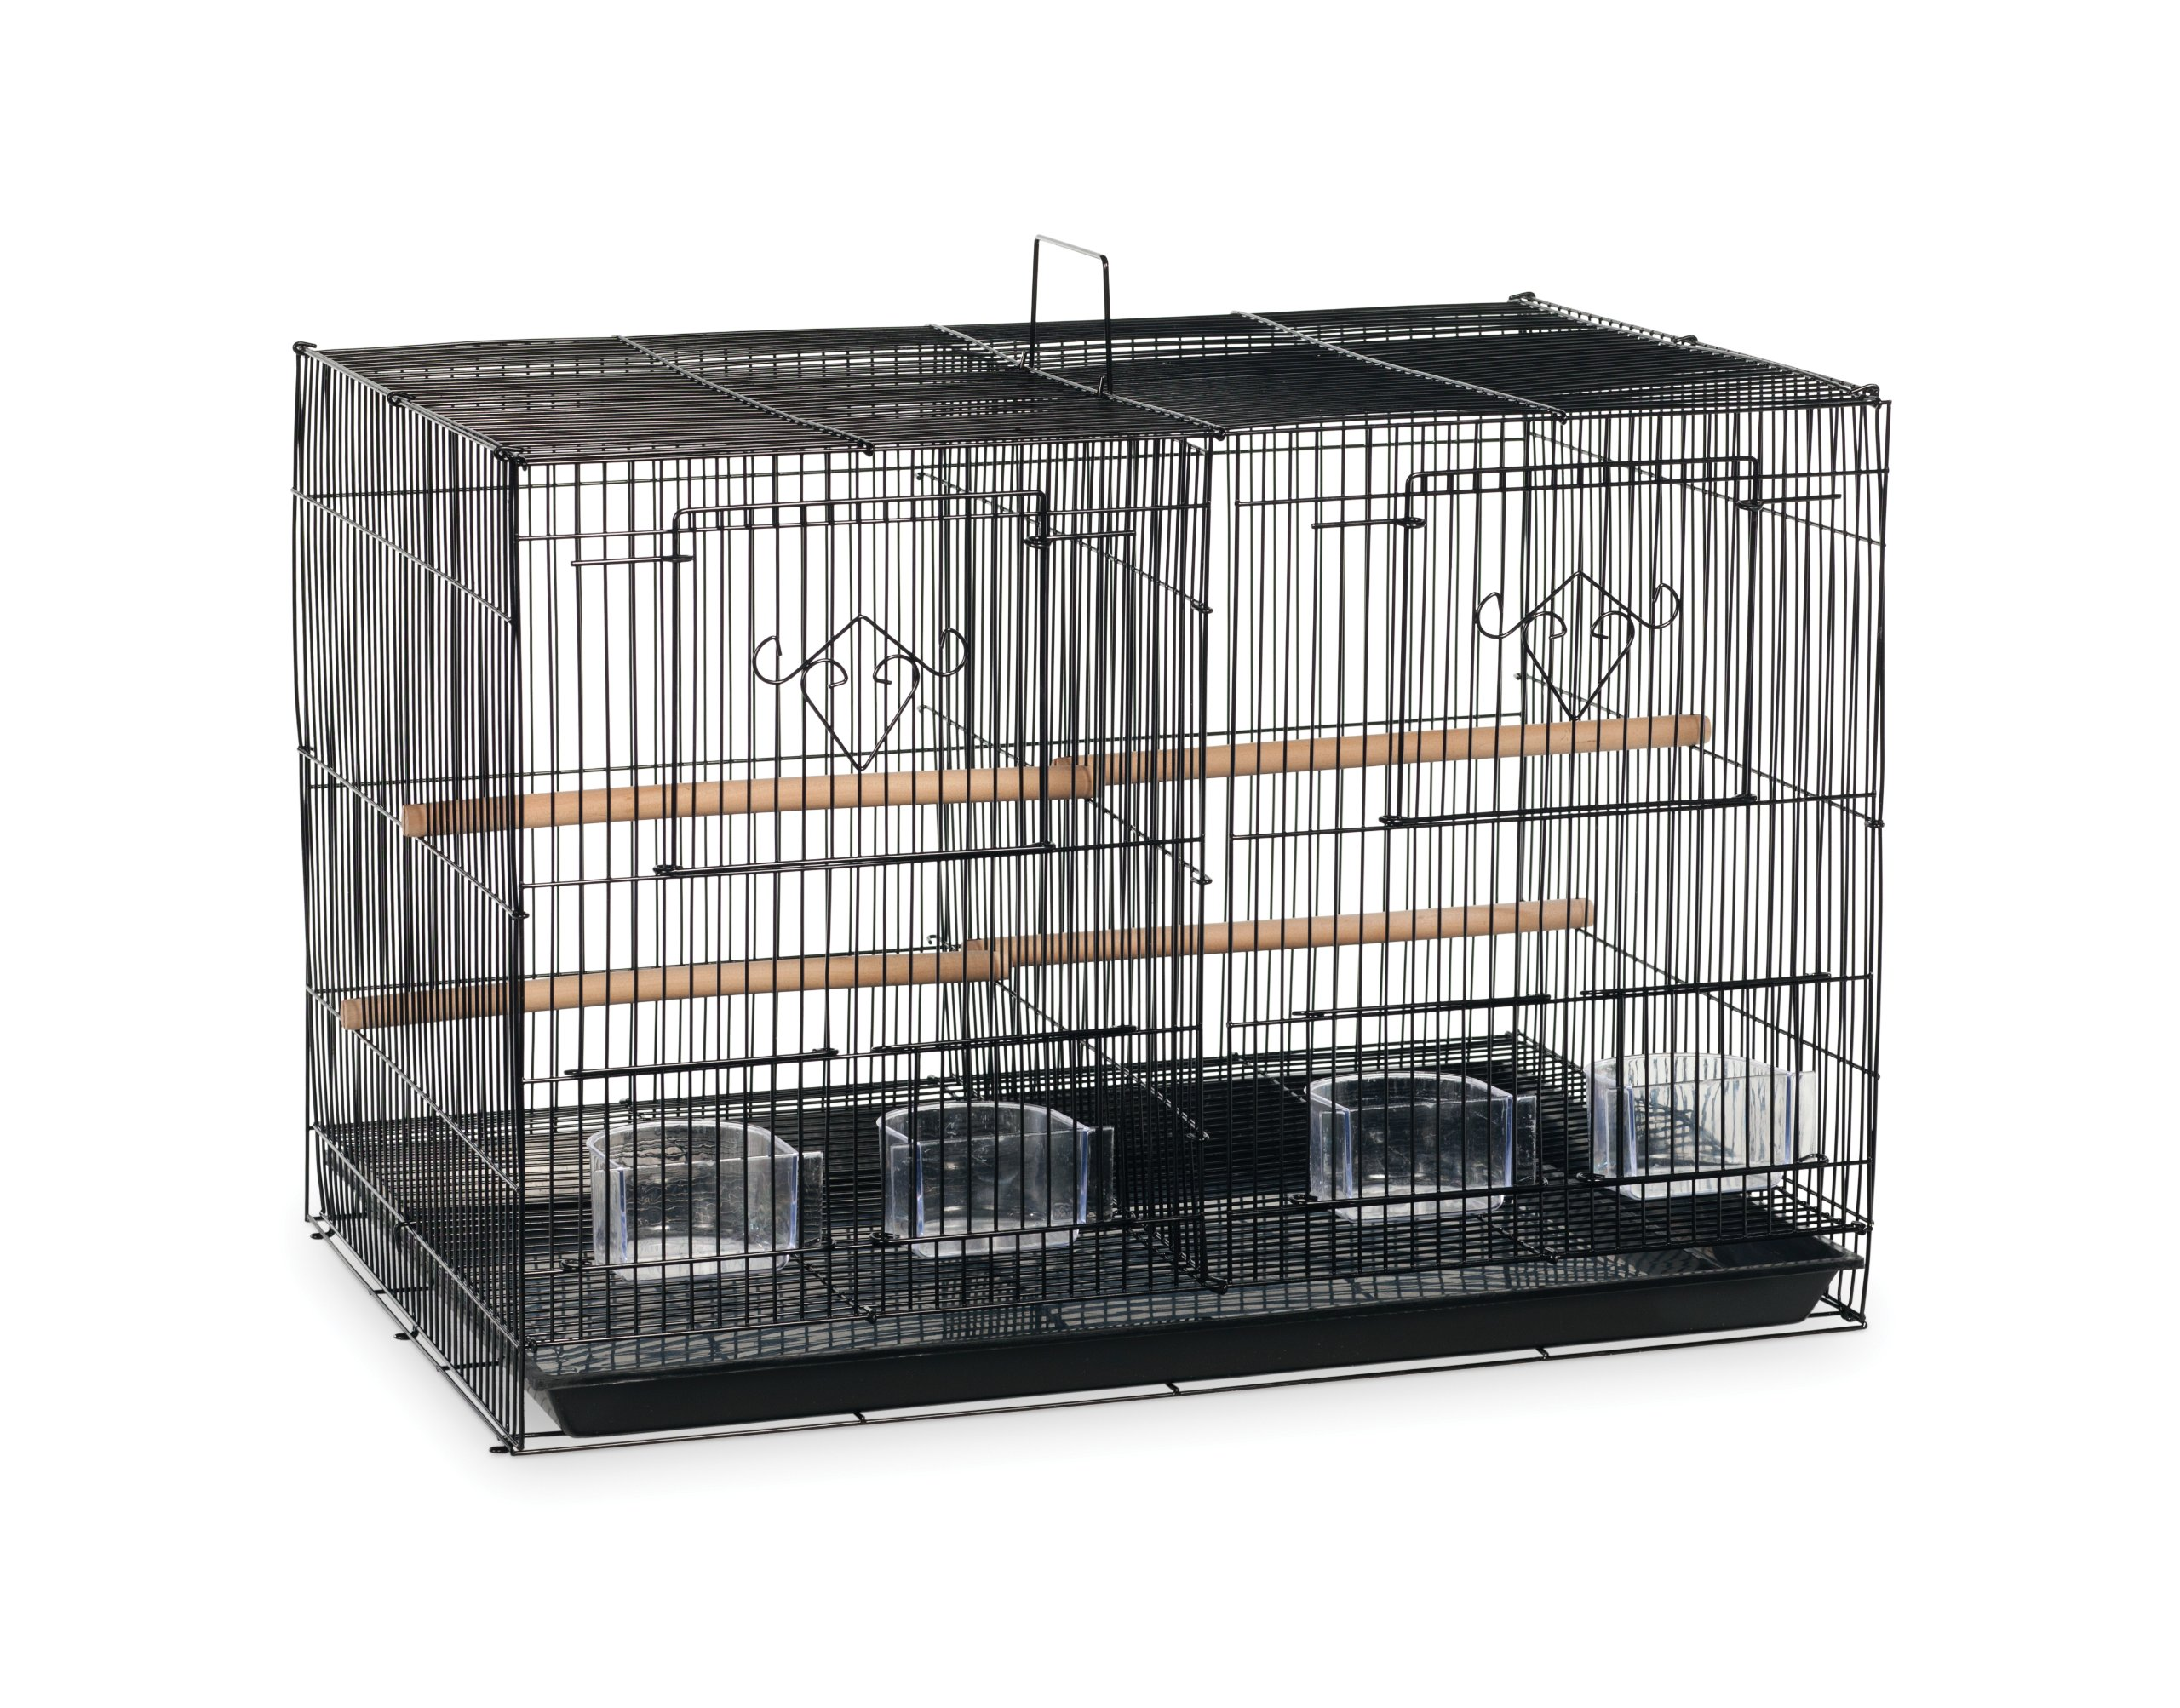 Prevue Hendryx SPF063 Divided Flight Cage, Black by Prevue Hendryx